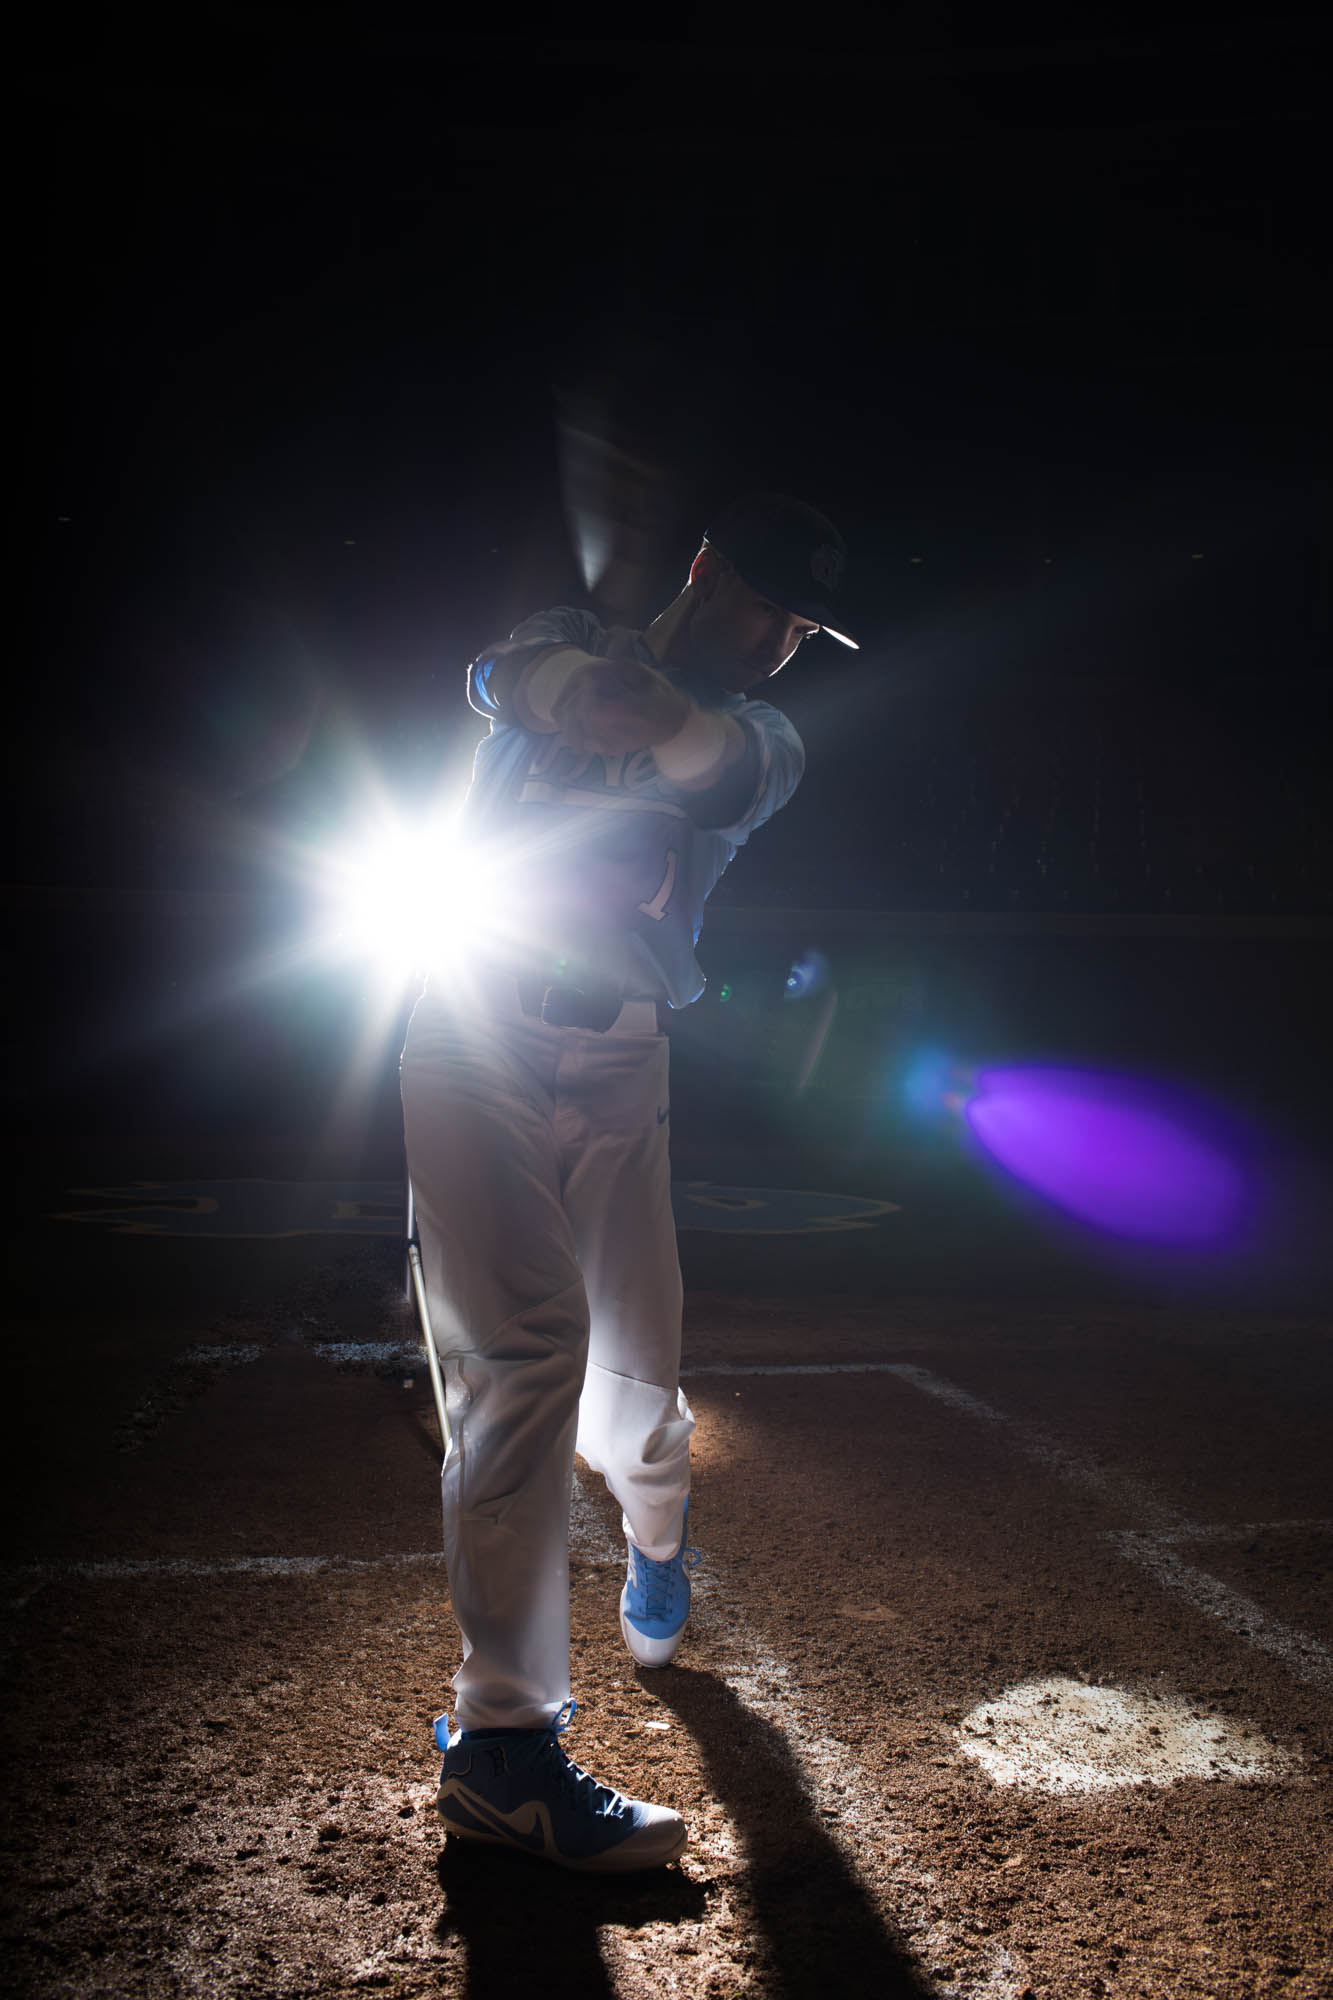 Working with multiple lights from the studio to the baseball field.